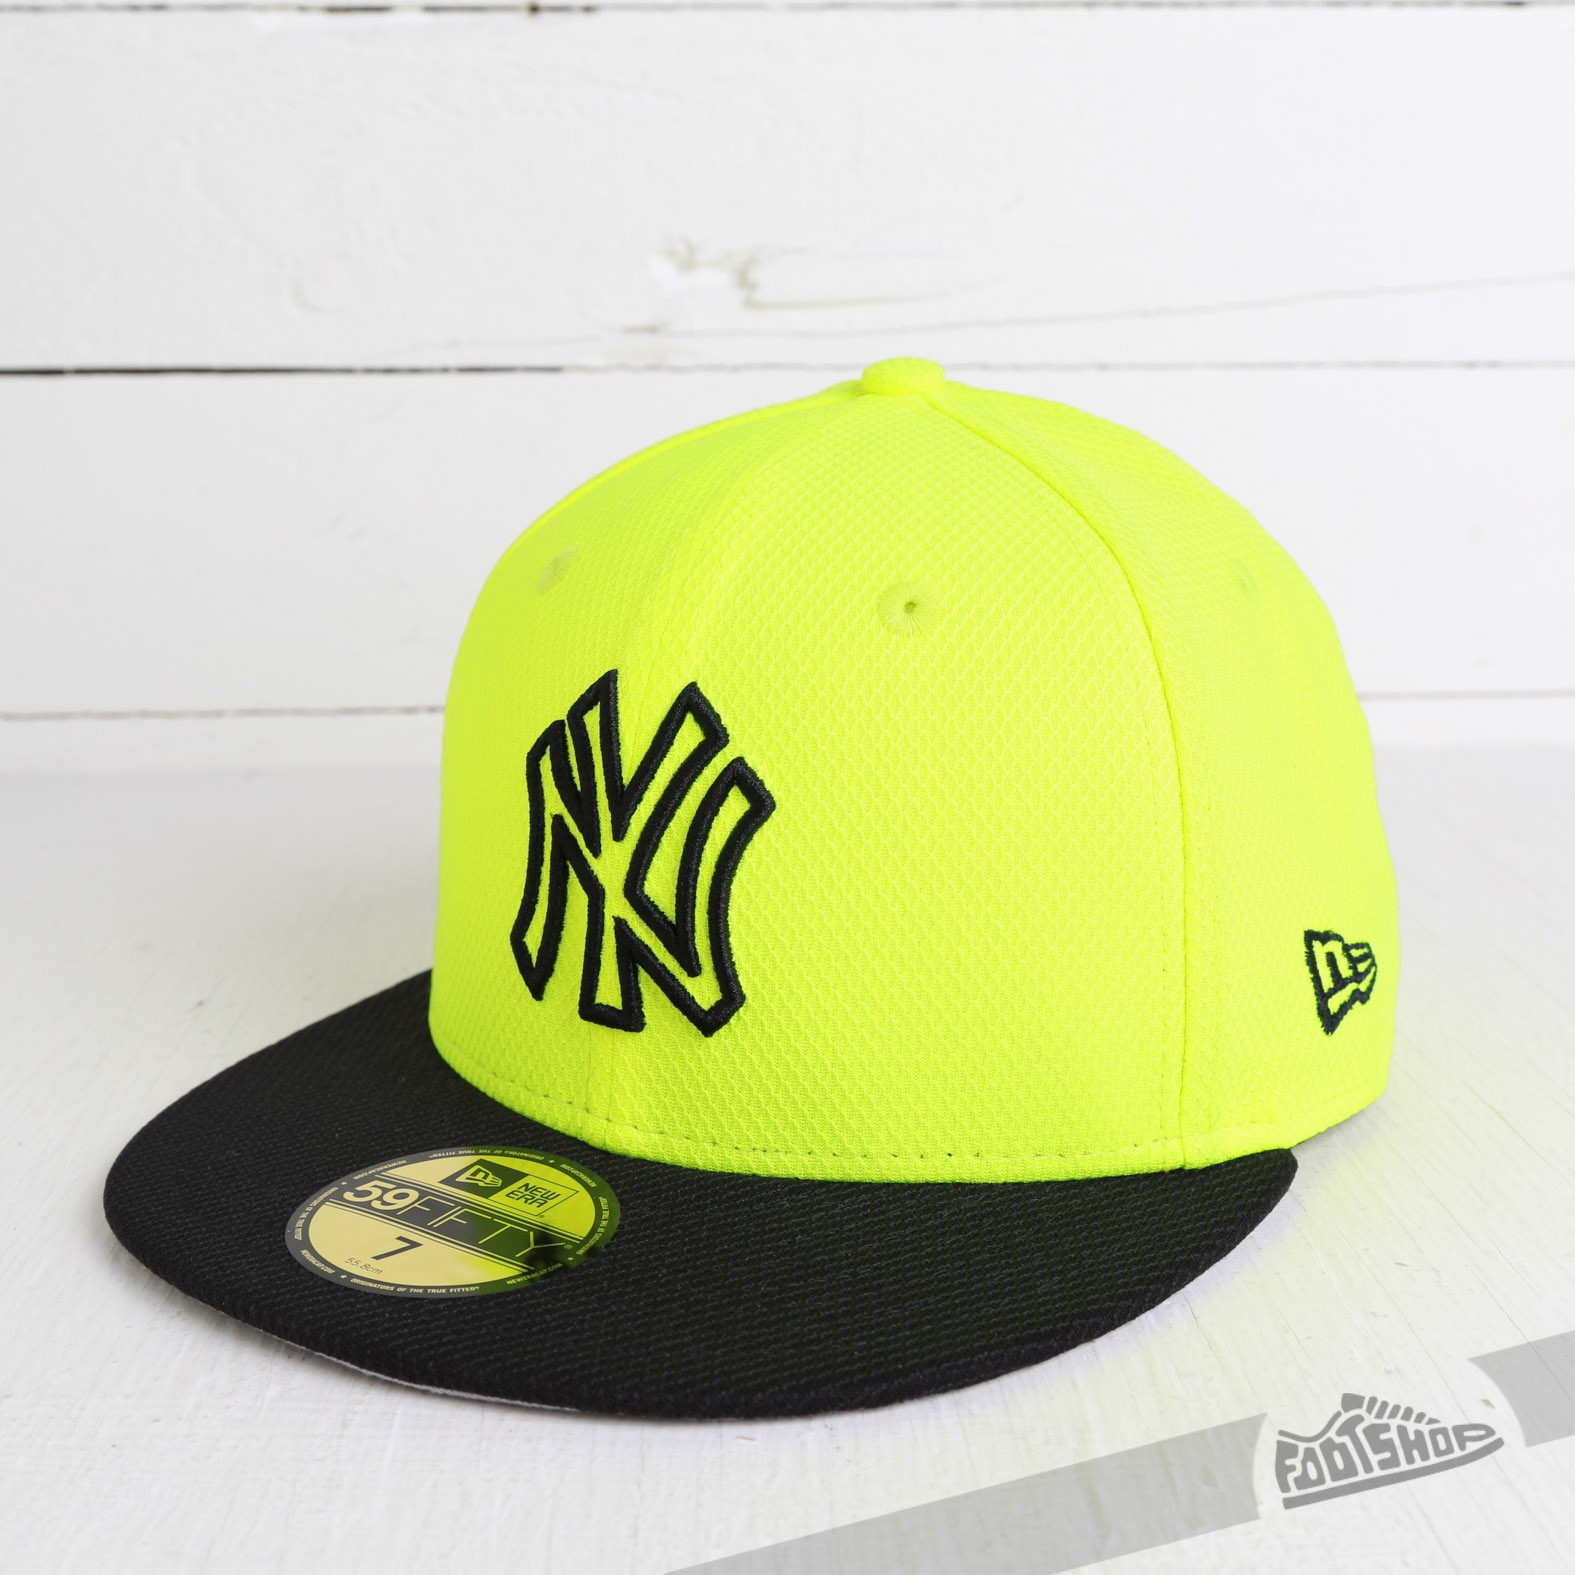 New Era 59Fifty Diamond Basic New York Yankees Yellow Black Fitted Cap  49d25c91e3d